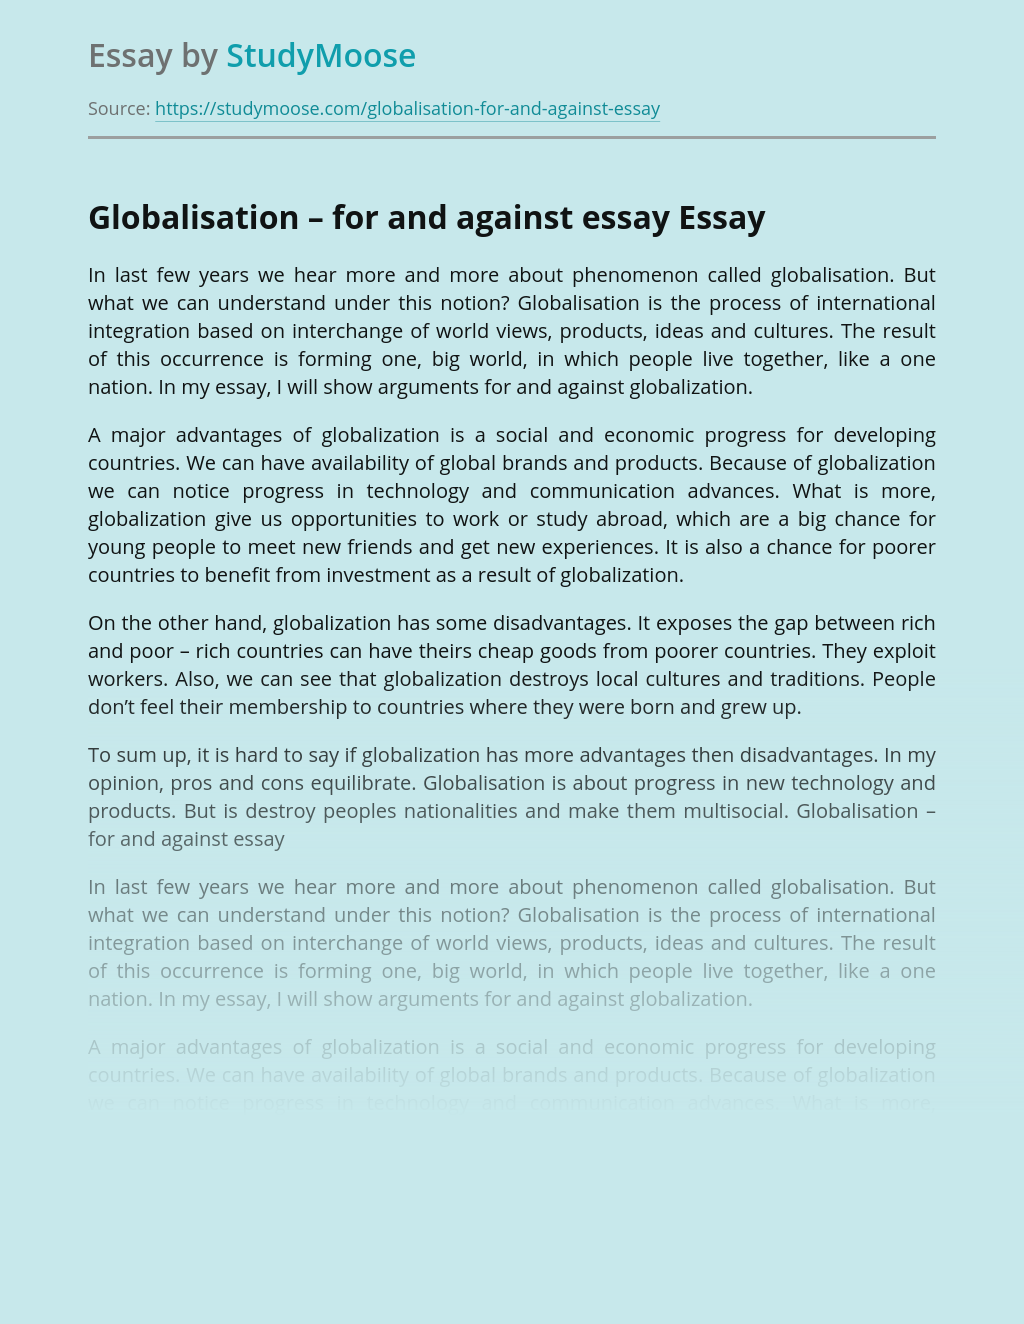 Globalisation – for and against essay